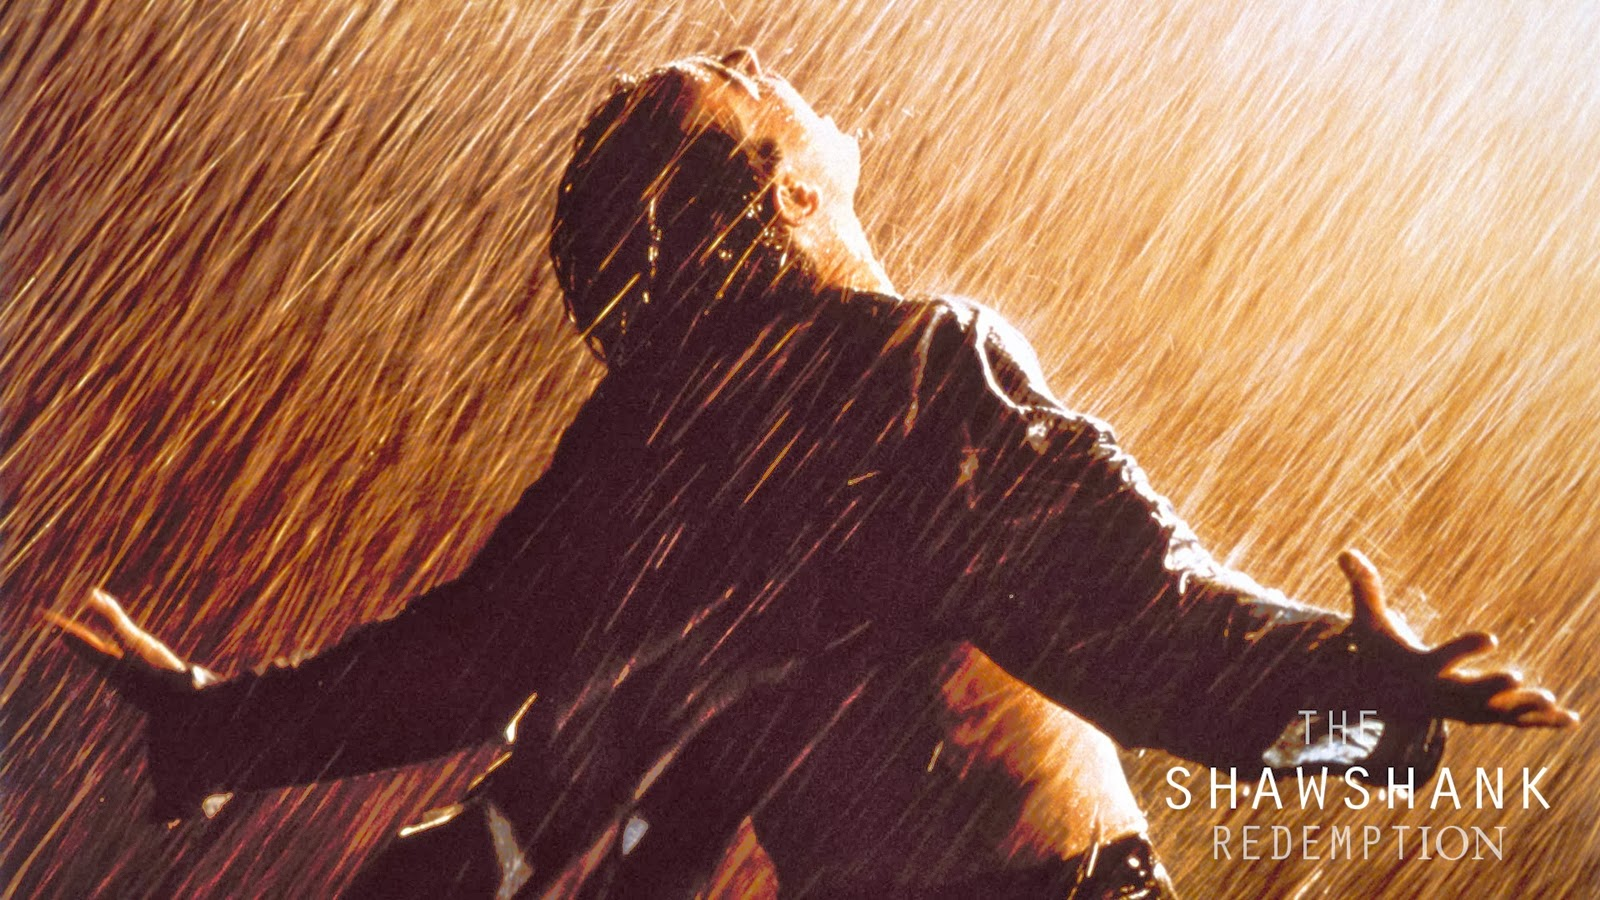 theme of shawshank redemption Start studying shawshank redemption themes: hope learn vocabulary, terms, and more with flashcards, games, and other study tools.